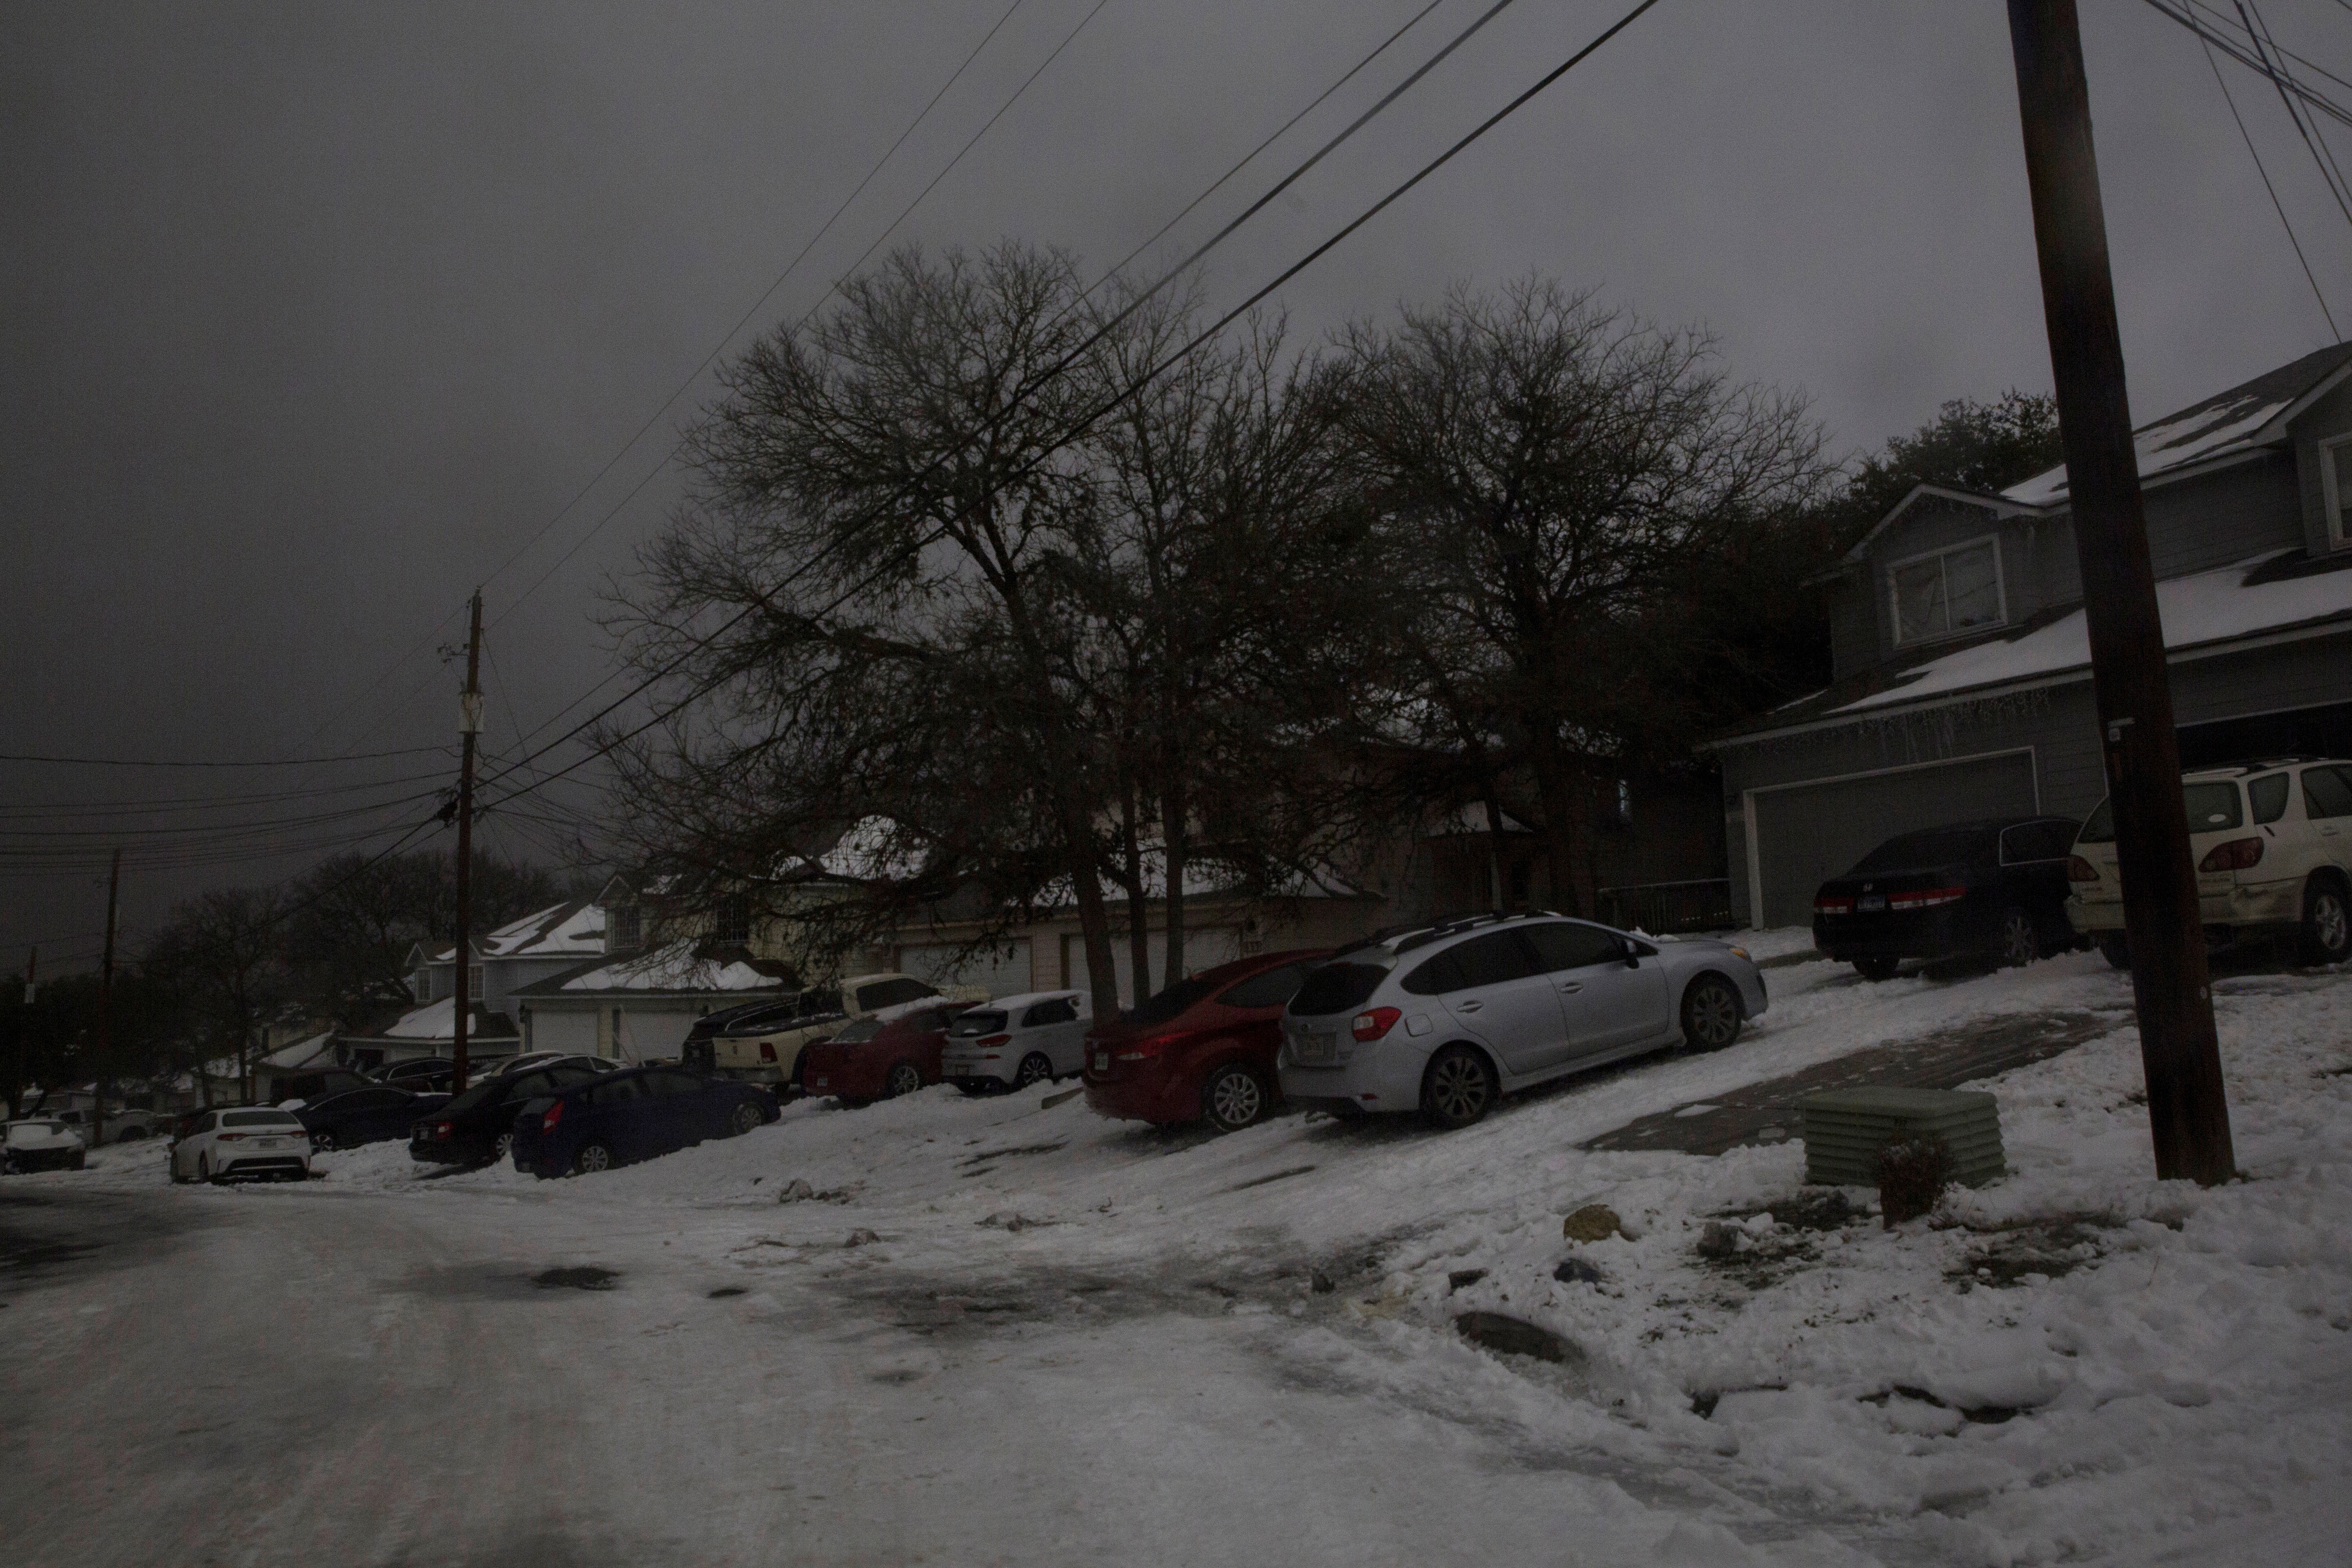 A neighborhood experiences a power outage after winter weather caused electricity blackouts in San Marcos, Texas, U.S. February 16, 2021. REUTERS/Mikala Compton